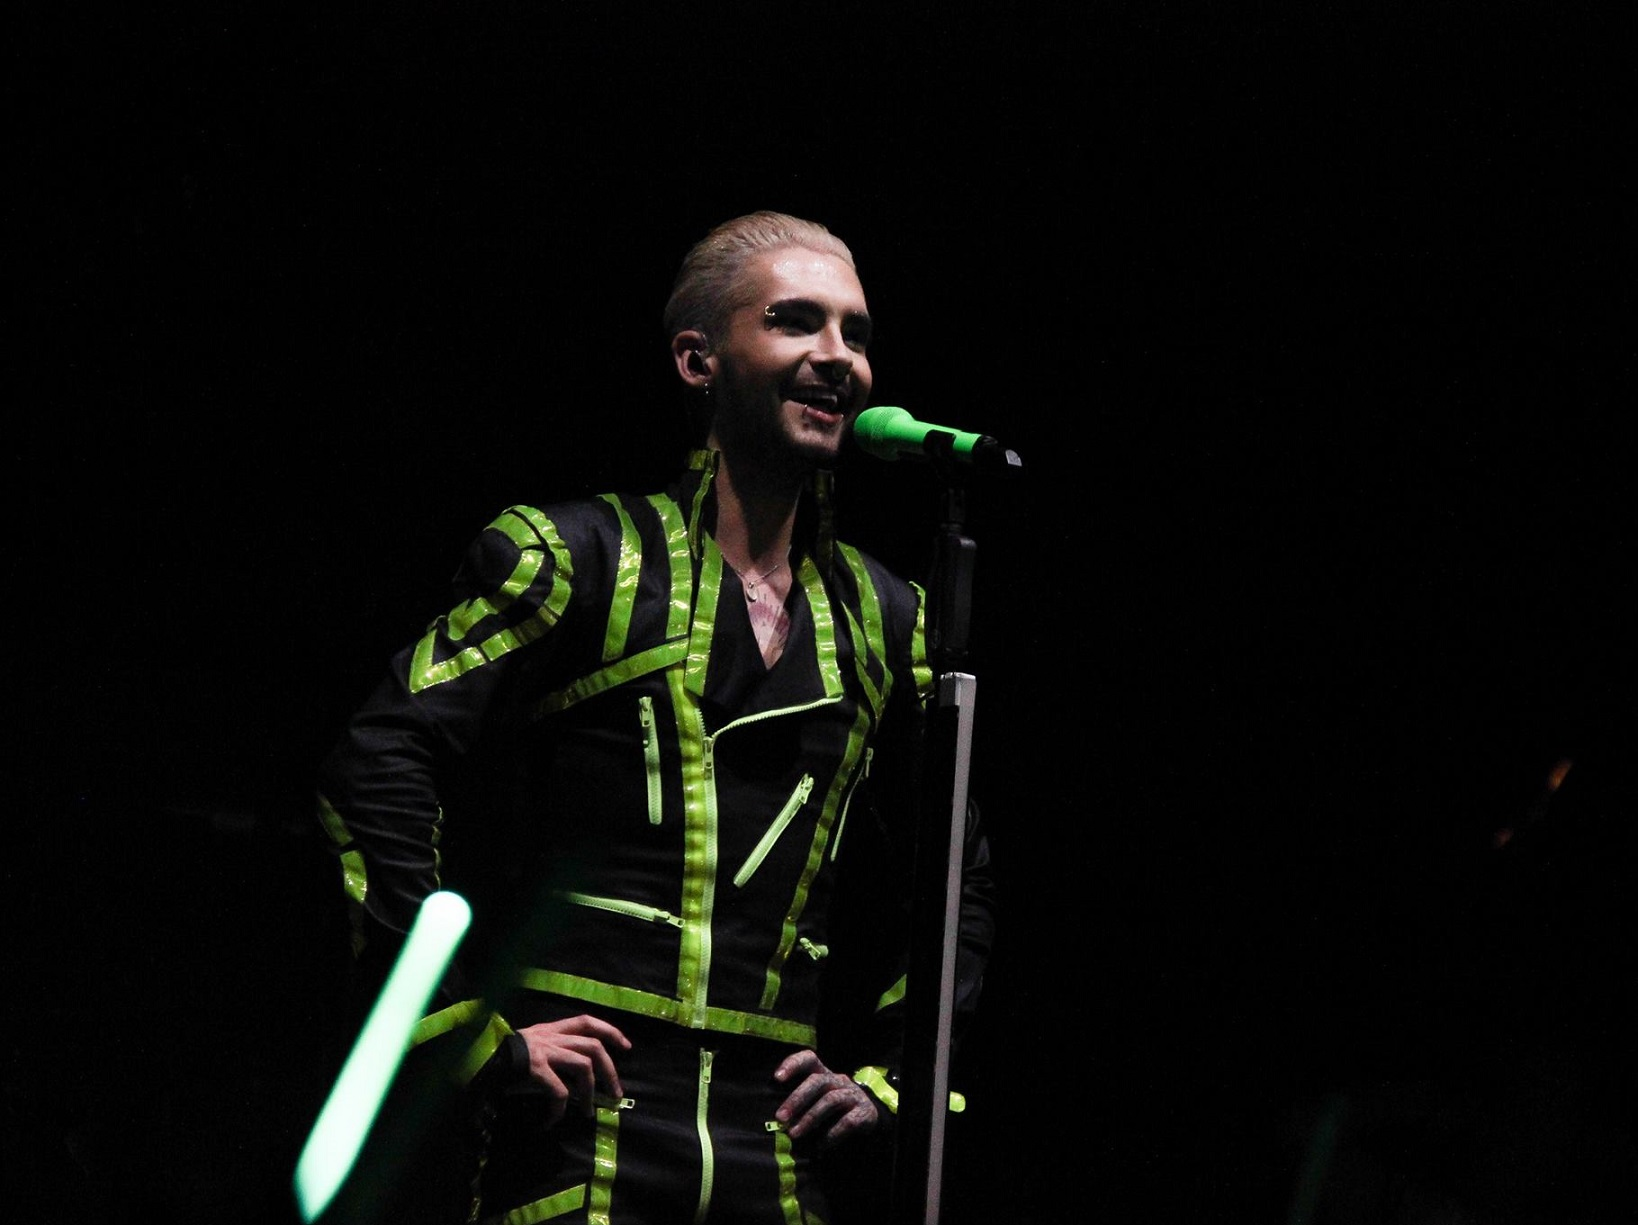 Bill Kaulitz photo #723632